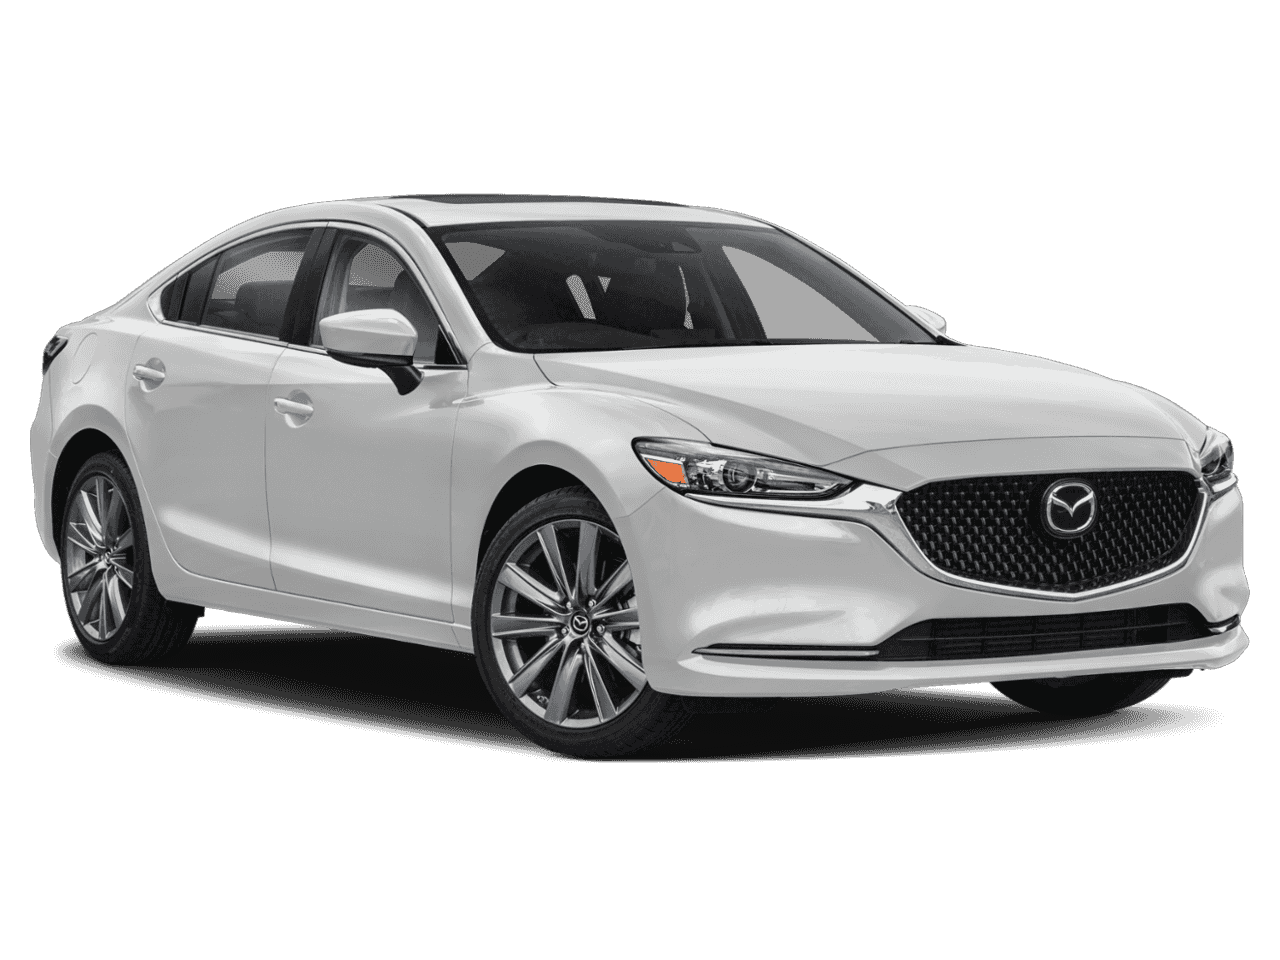 2019 Mazda6 Grand Touring FWD 4dr Car